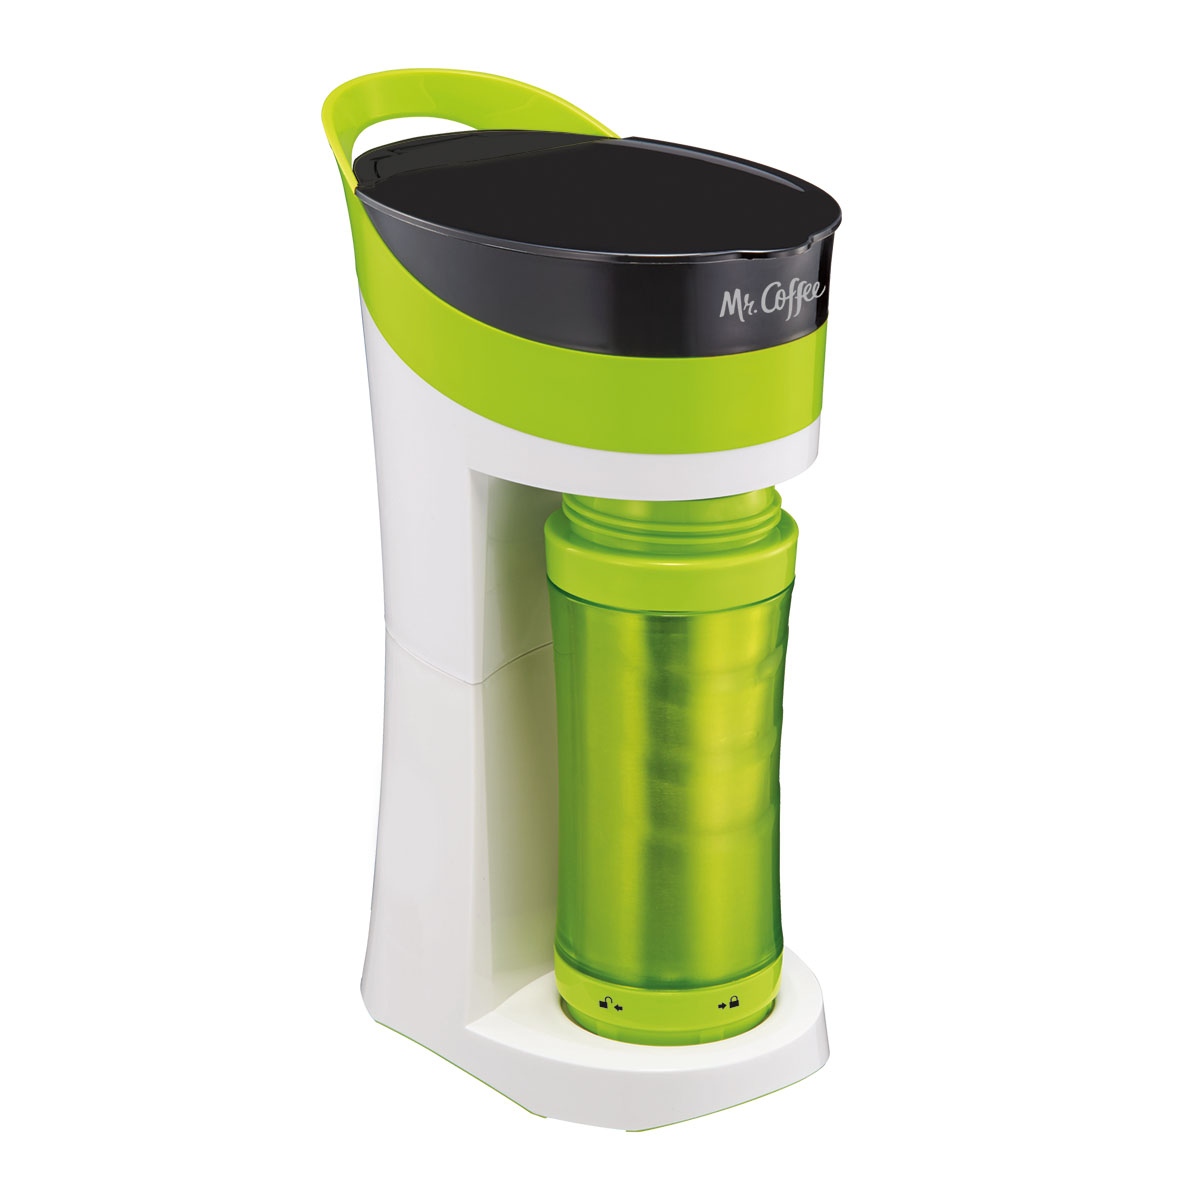 Mr. Coffee Pour! Brew! Go! Personal Grounds Coffee Maker with Travel Mug, Green